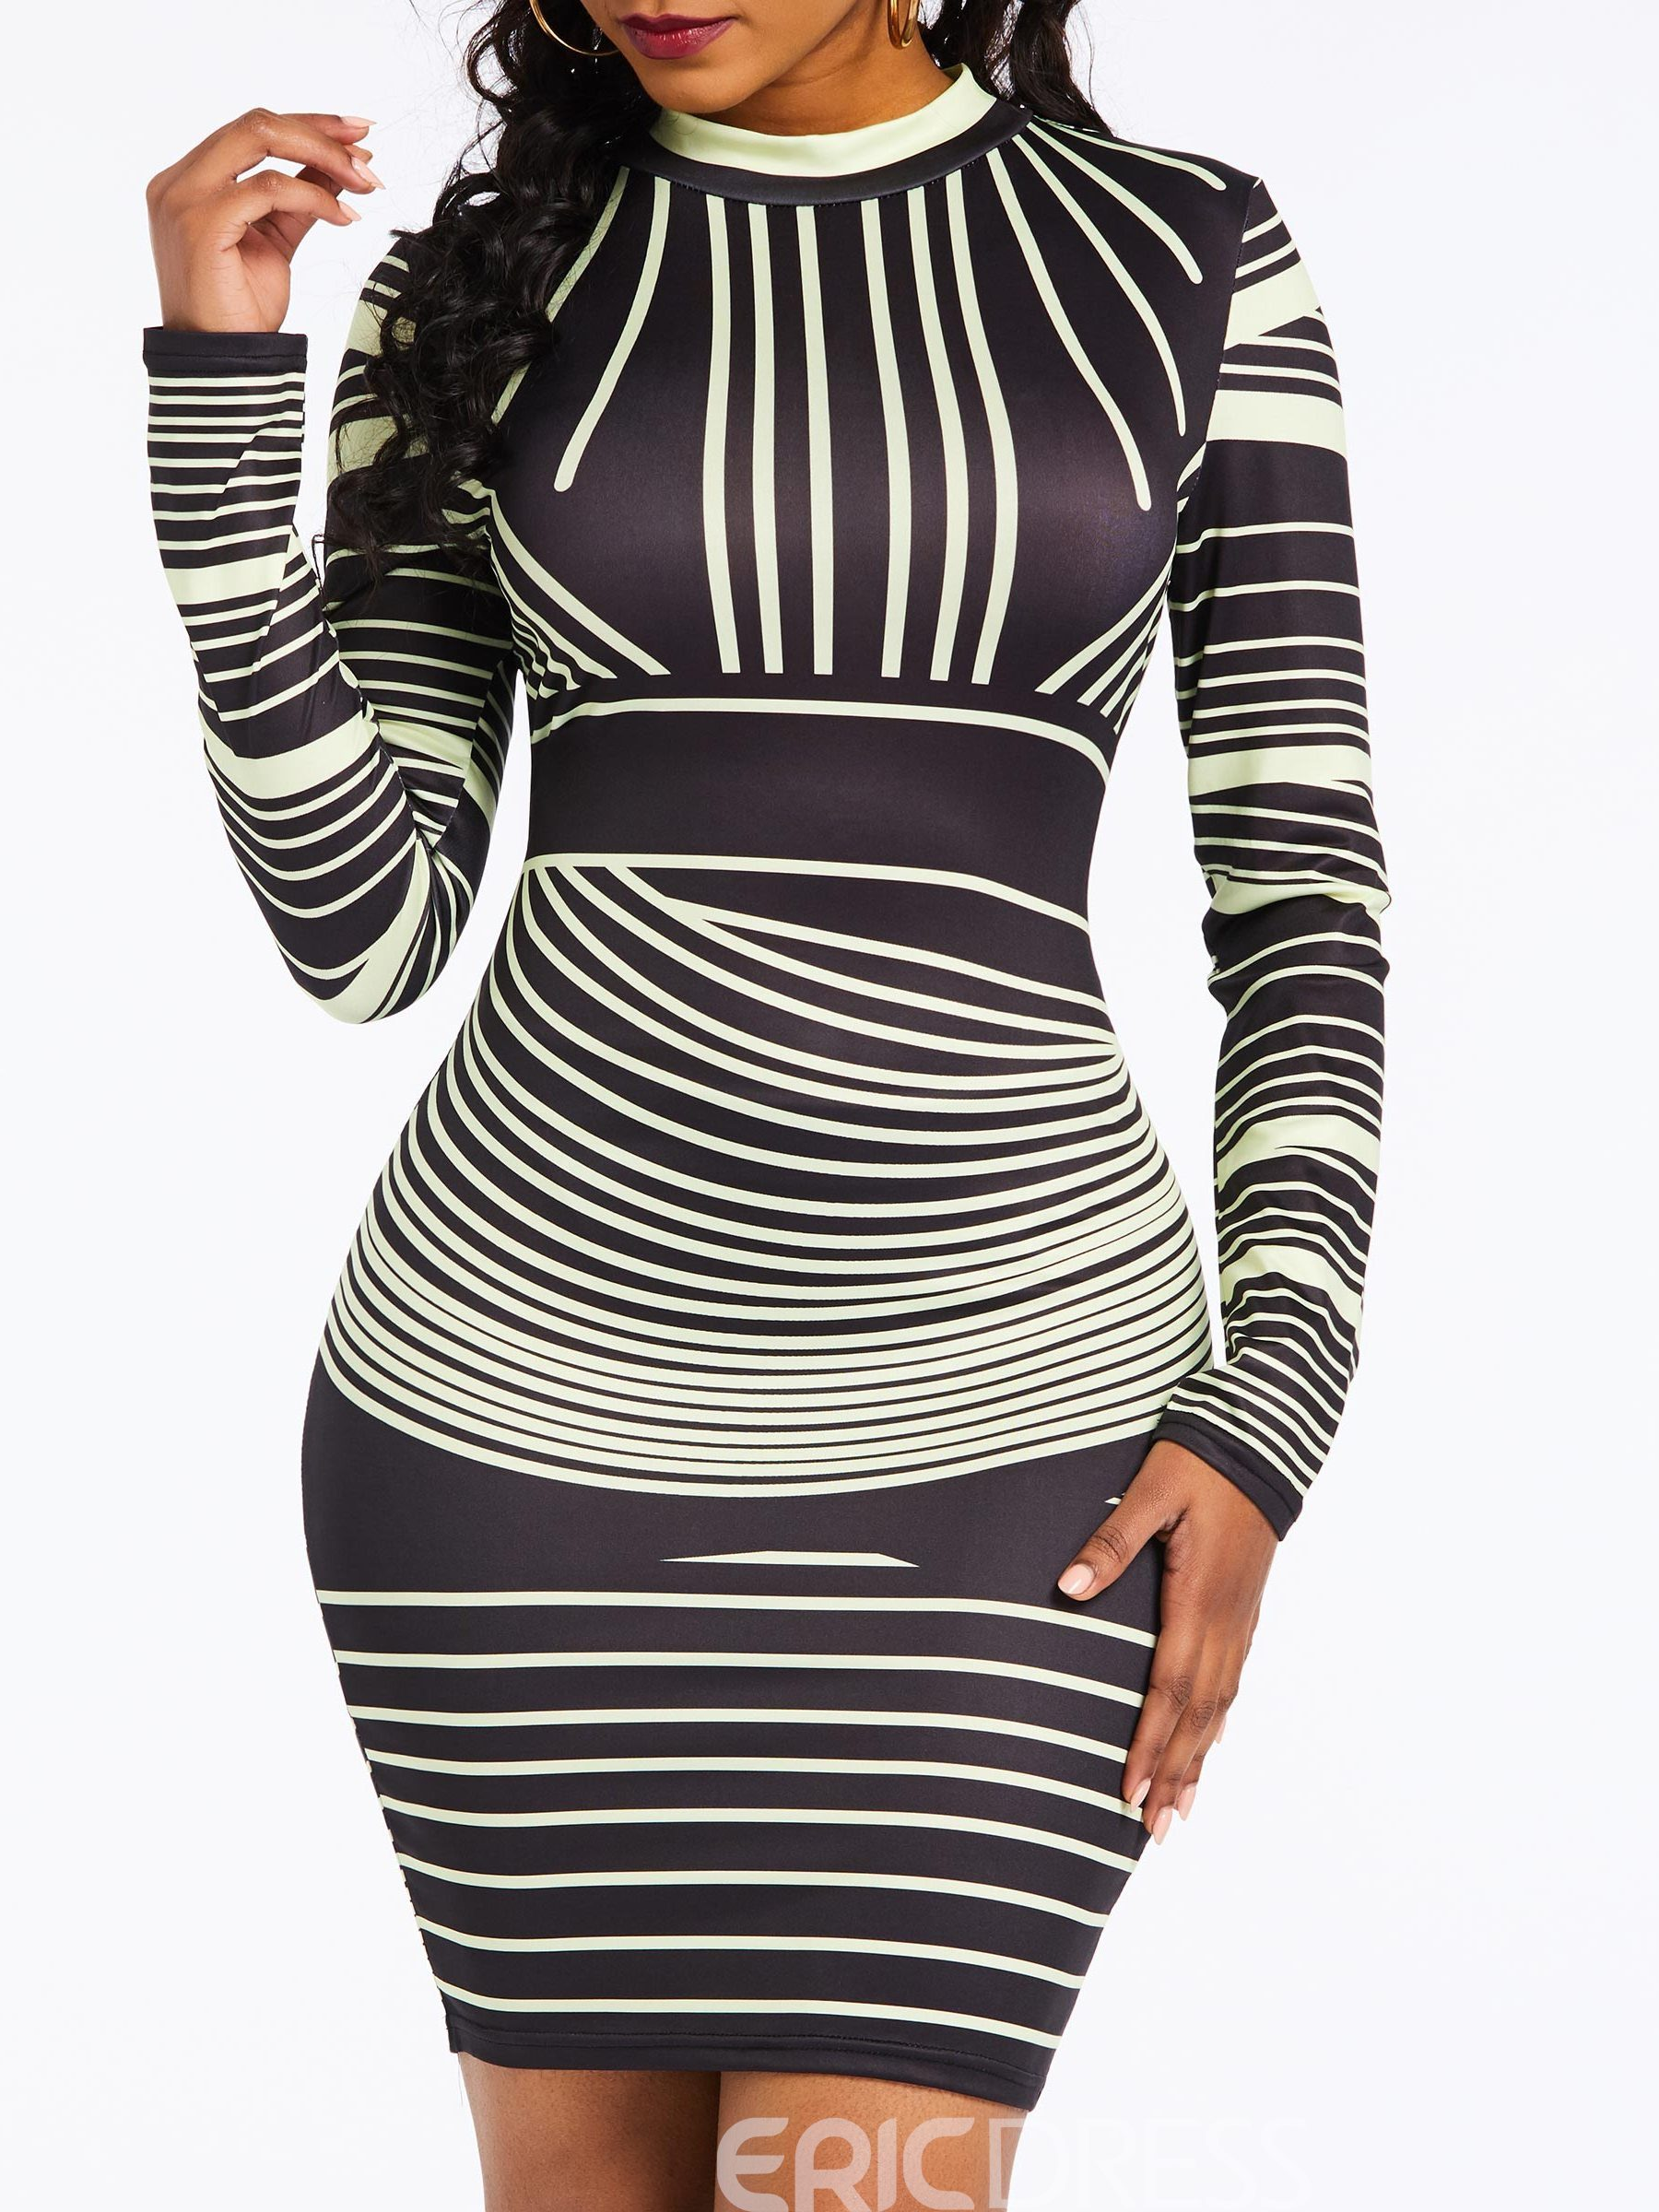 Ericdress Above Knee Long Sleeve Stripe Bodycon Dress